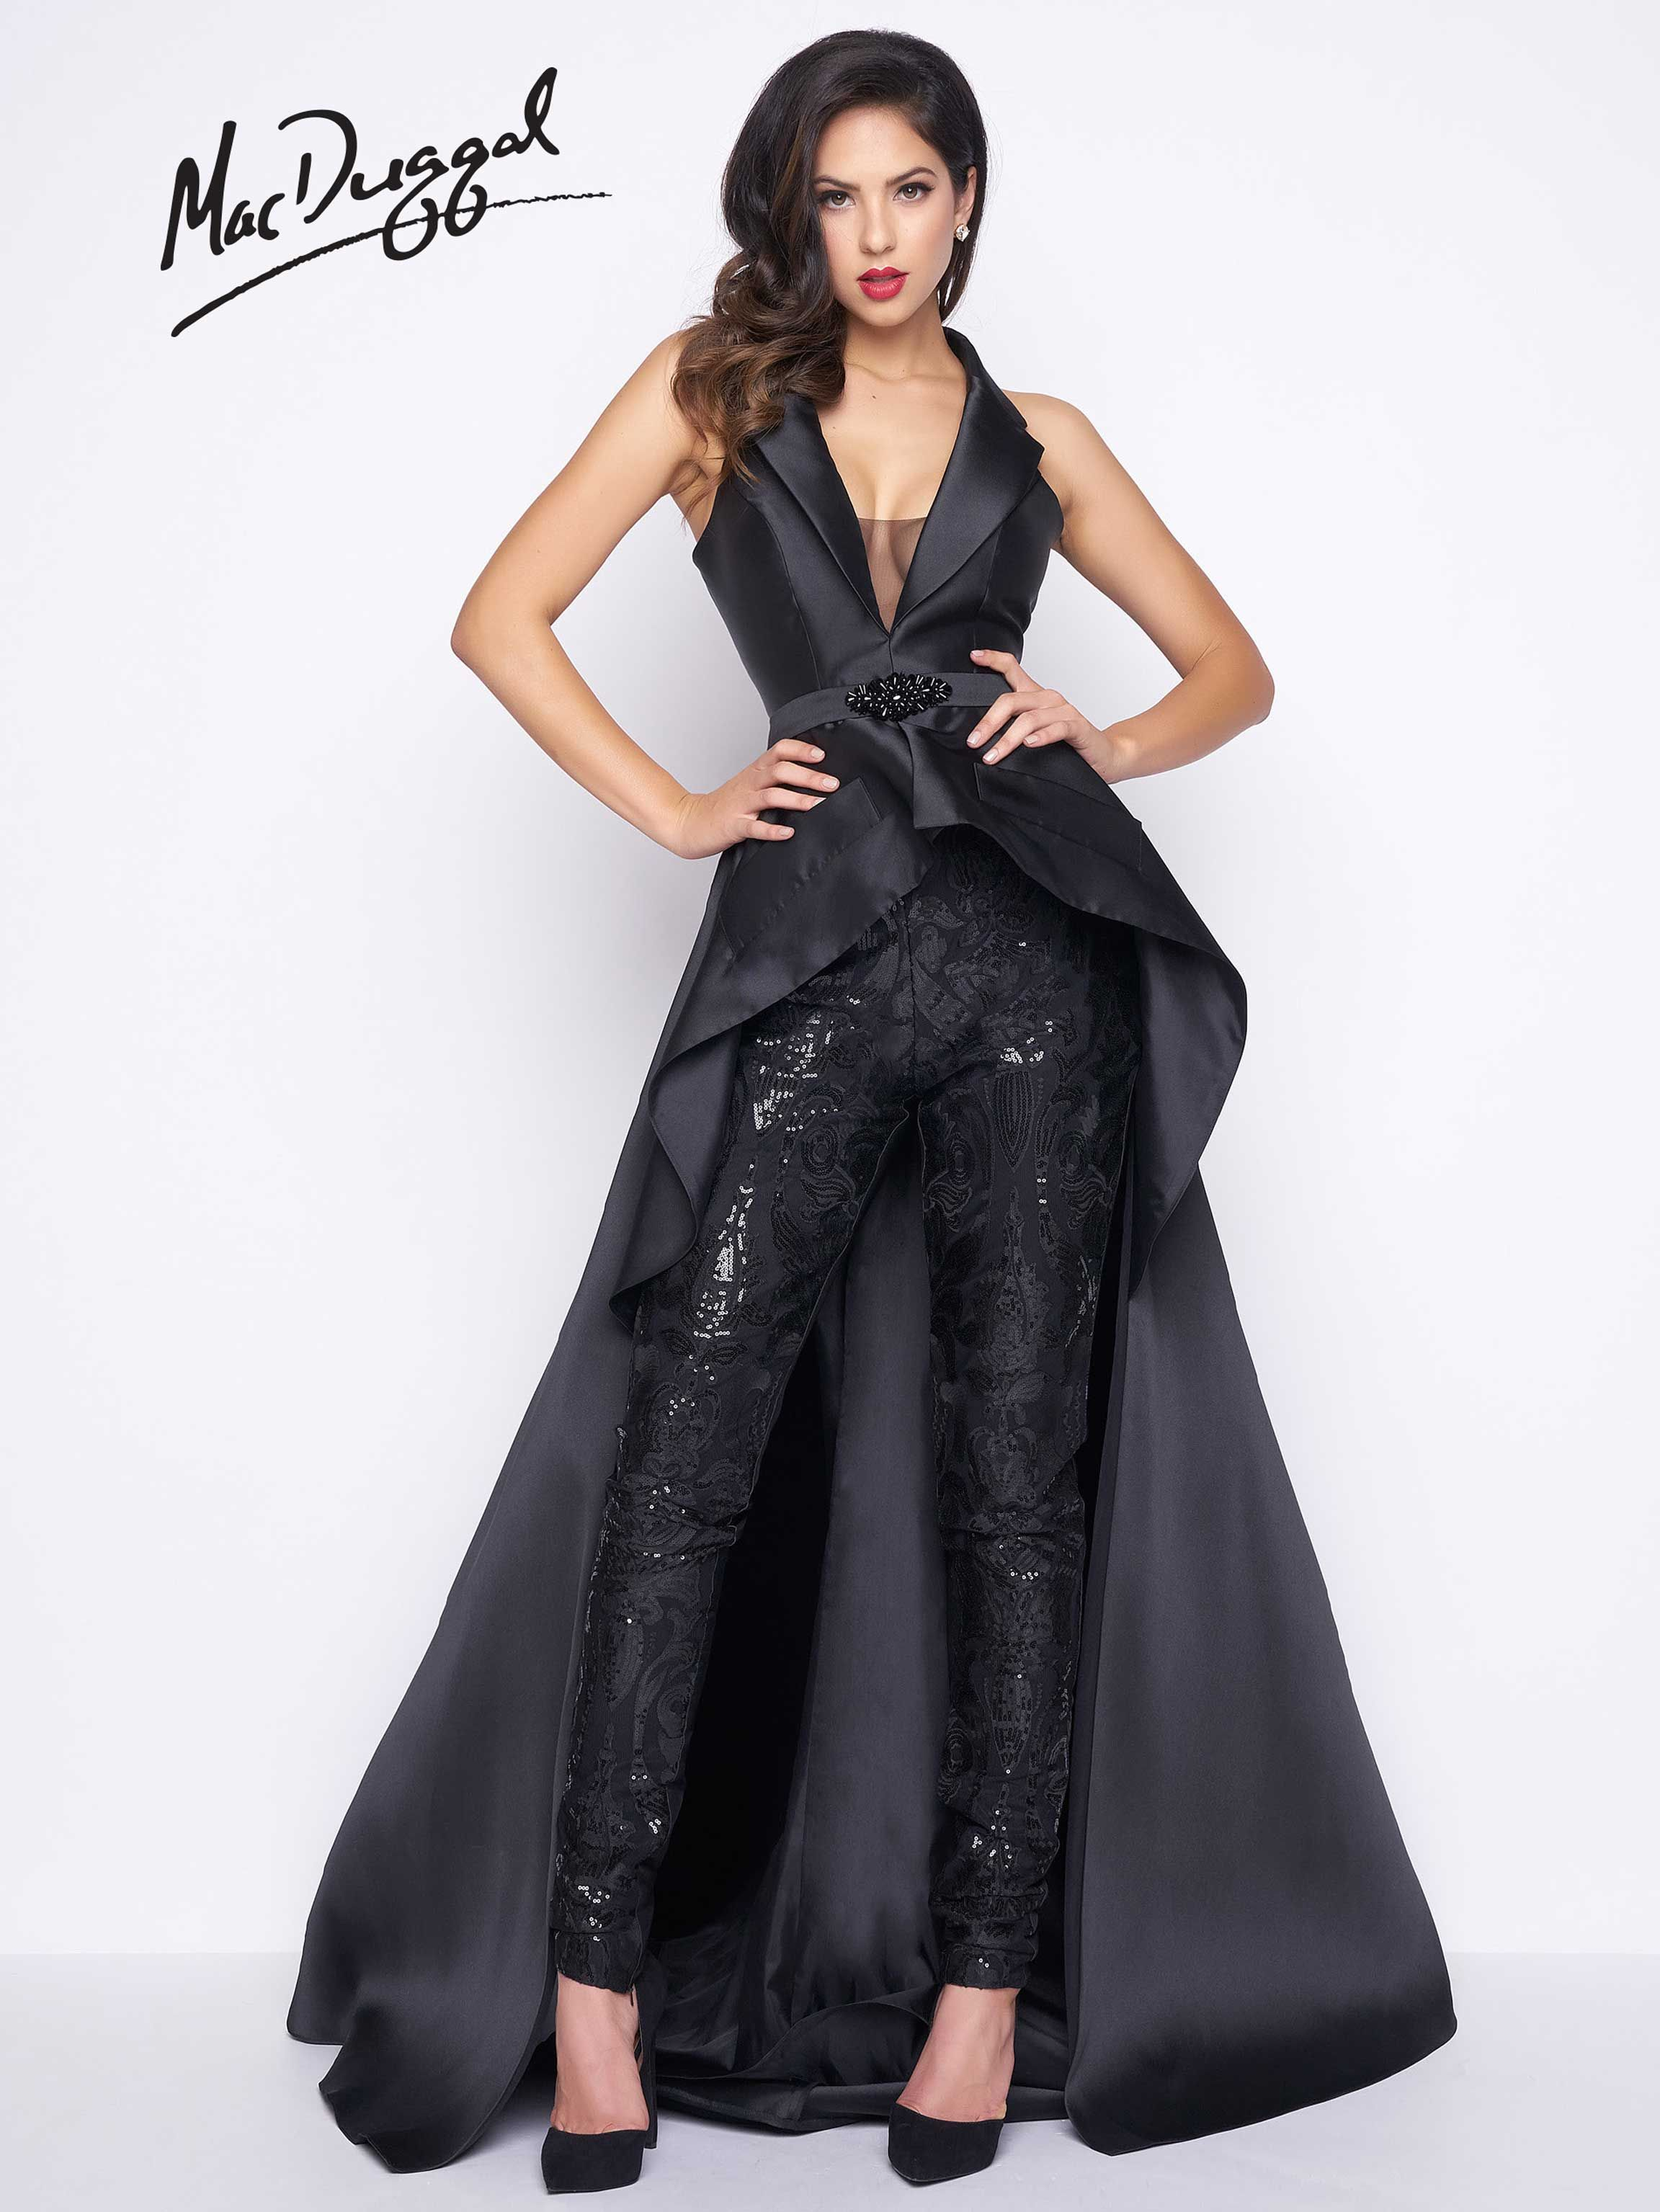 R Mac Duggal Sequin pants jumpsuit with tuxedo collar Spring 2017 collection This modern gown with skinny sequined pants boasts a plunging neckline